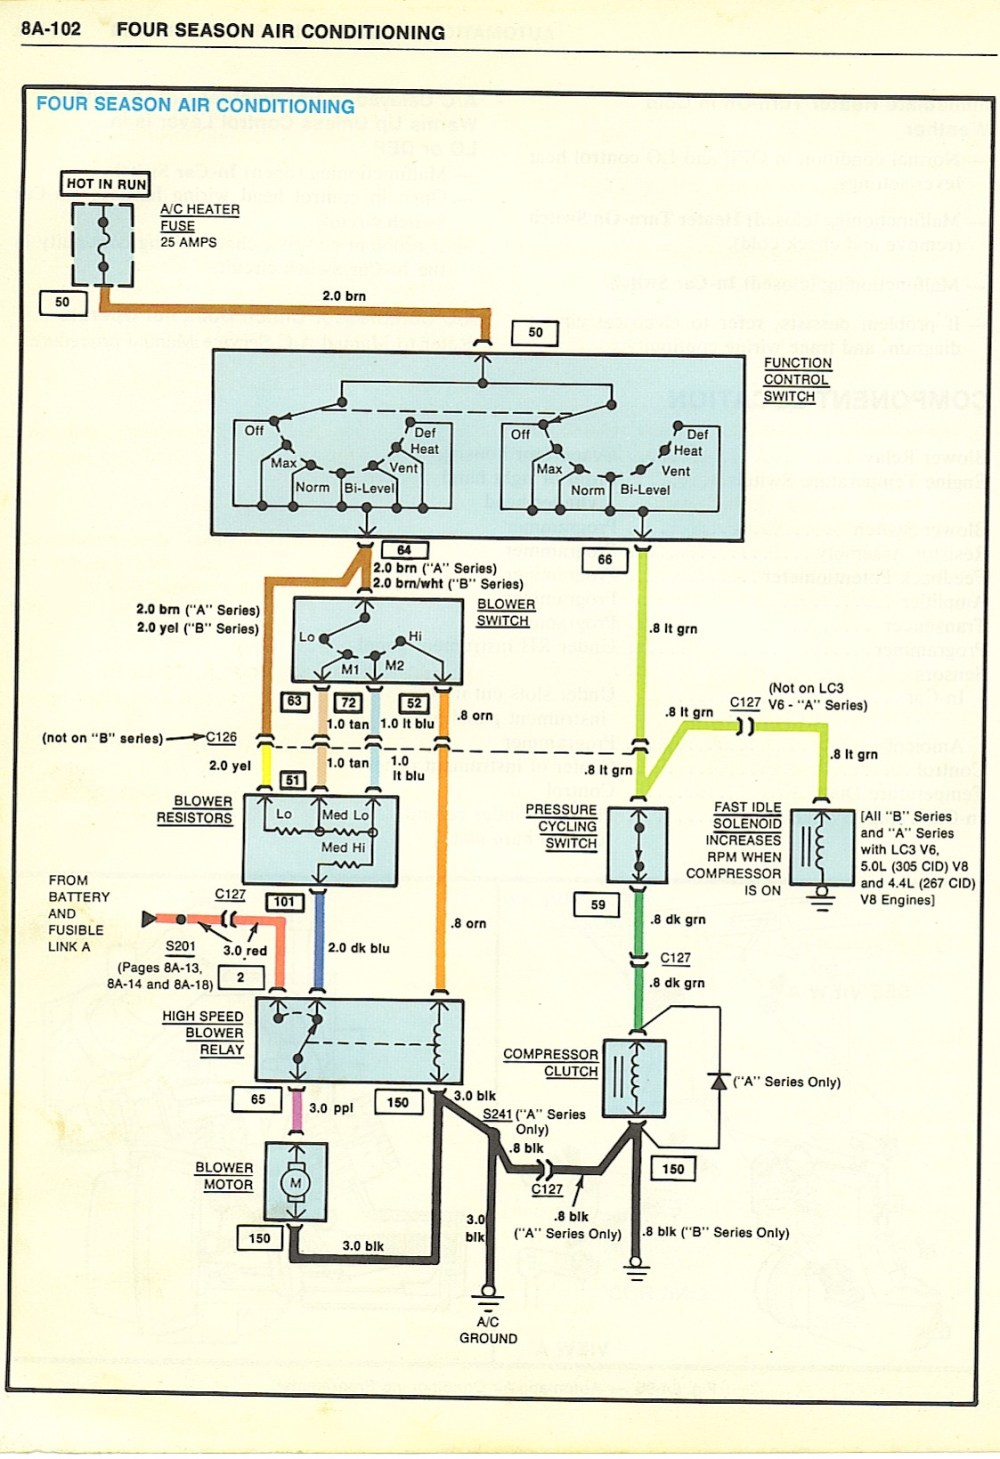 medium resolution of ford f800 wiring diagram air conditioning wiring diagramford f800 wiring diagram air conditioning wiring diagramford f800